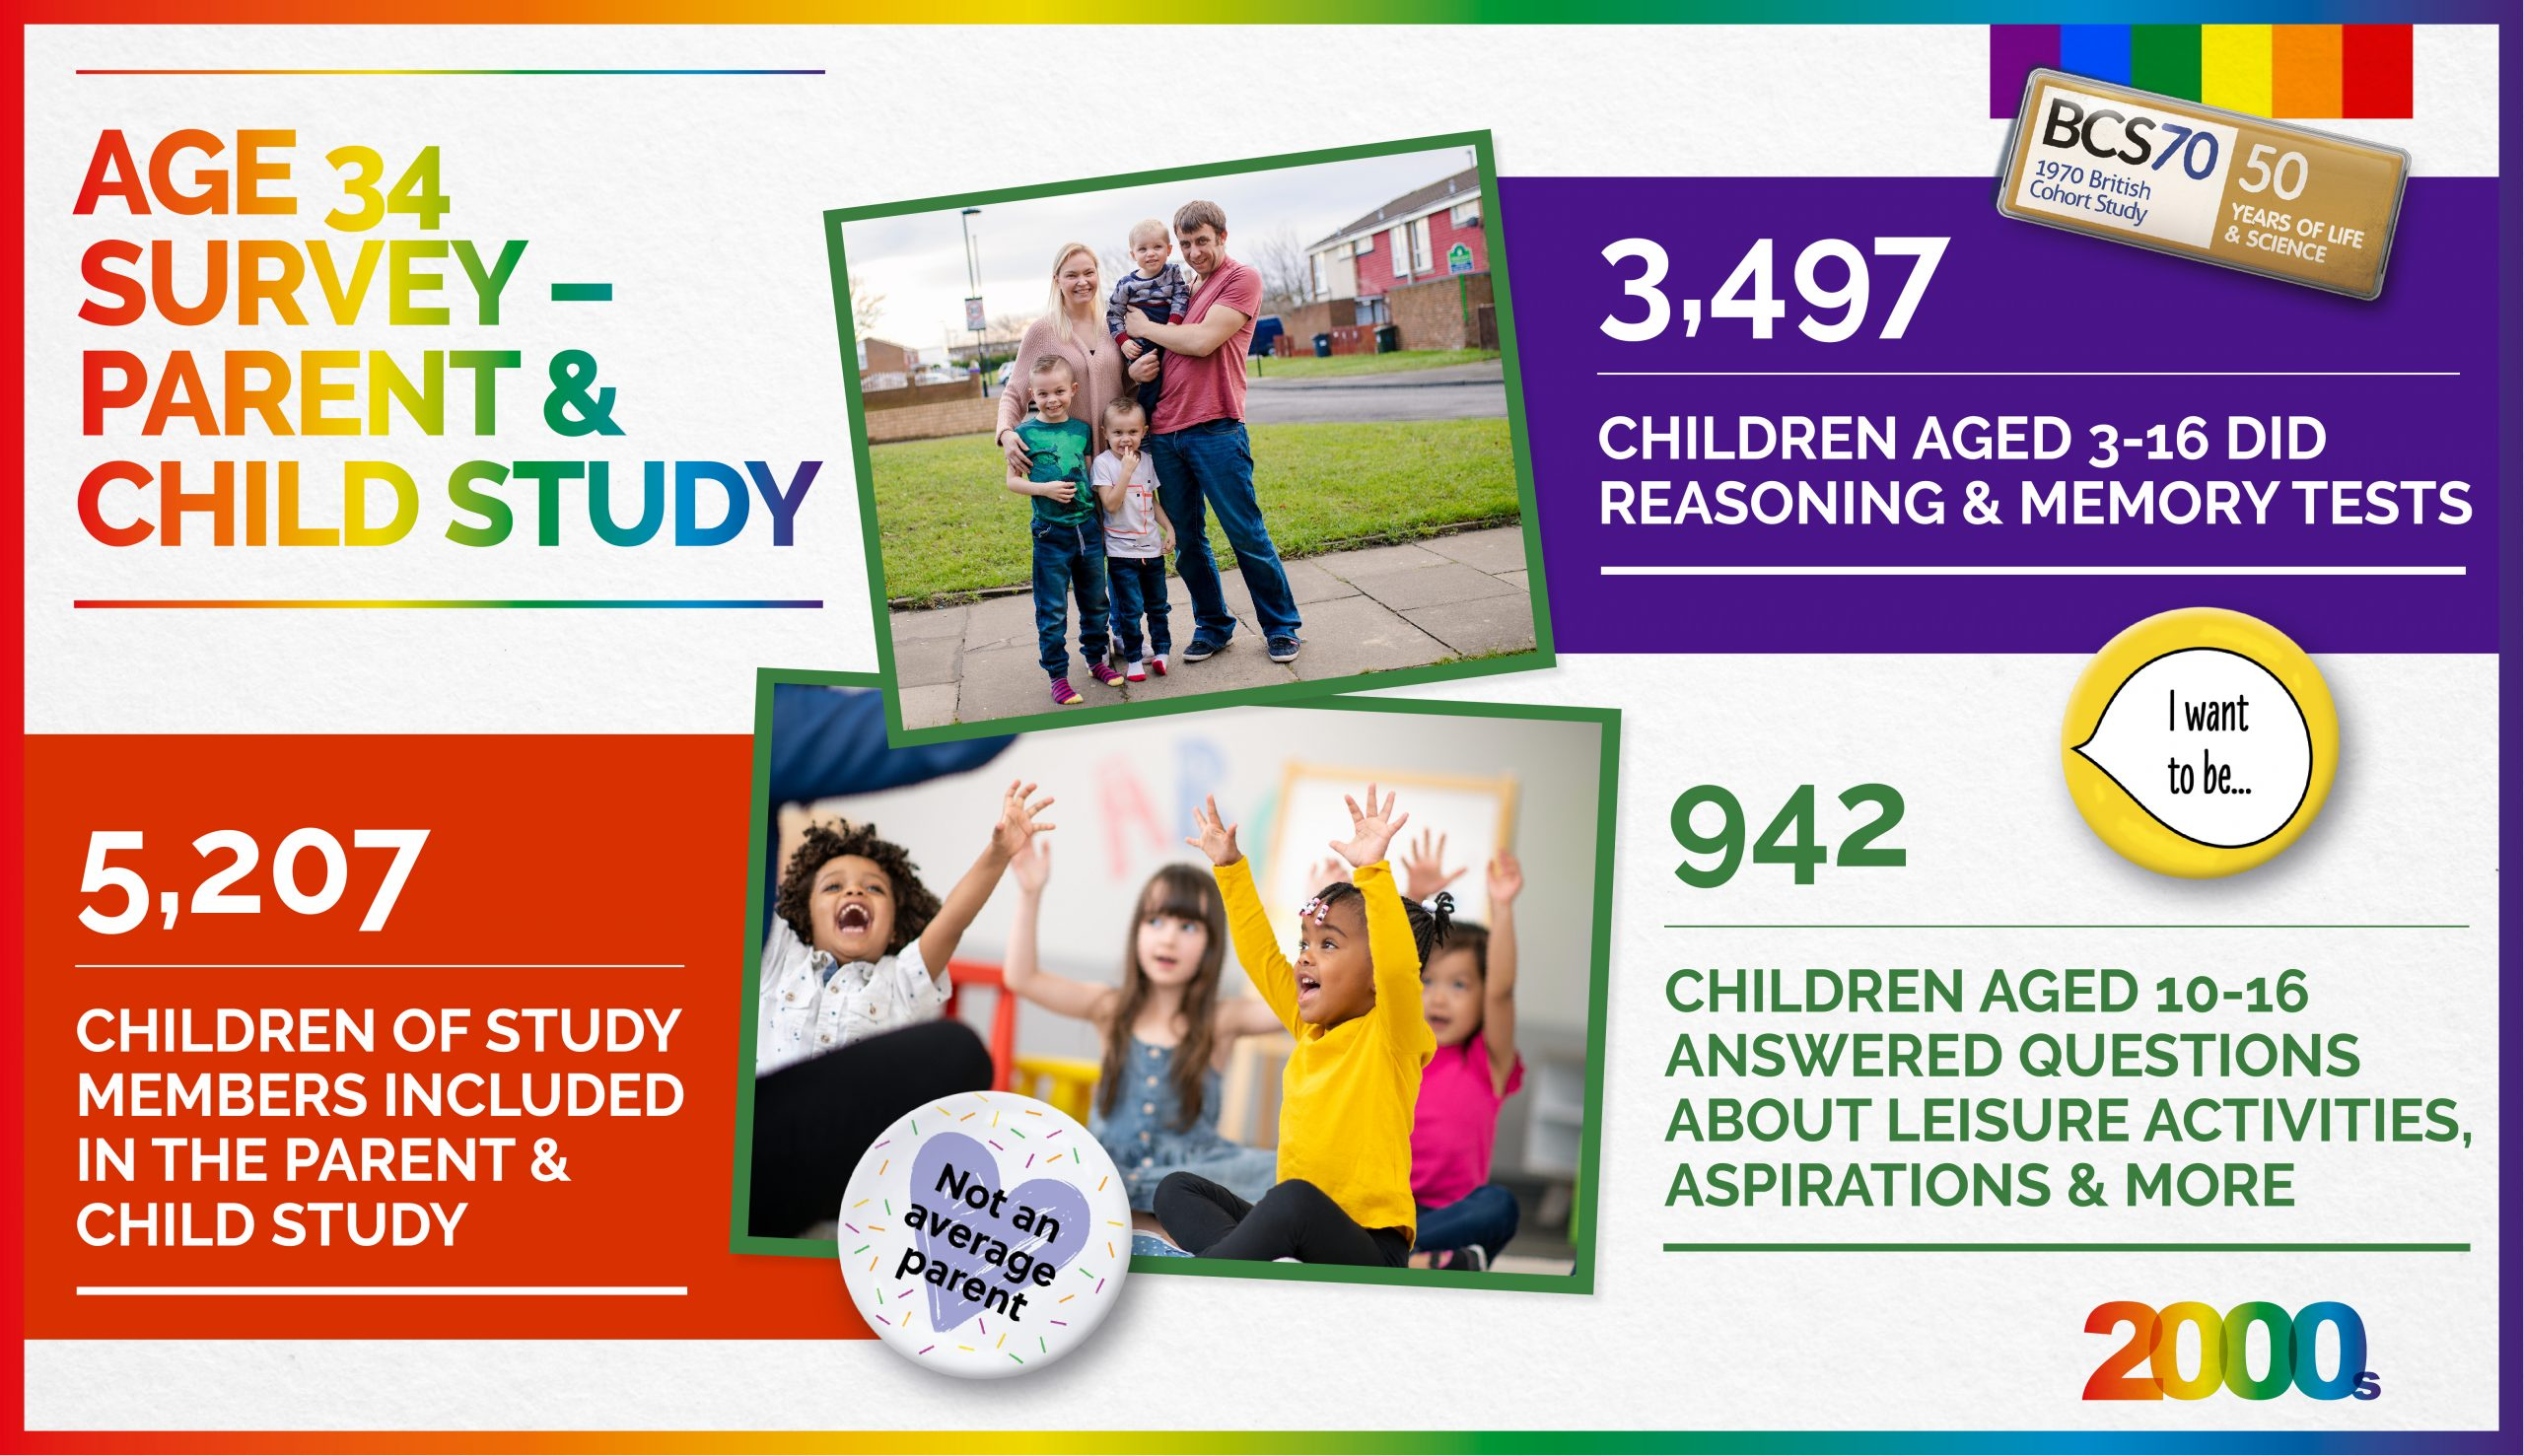 Collage of pictures, badges and figures about the parent & child study